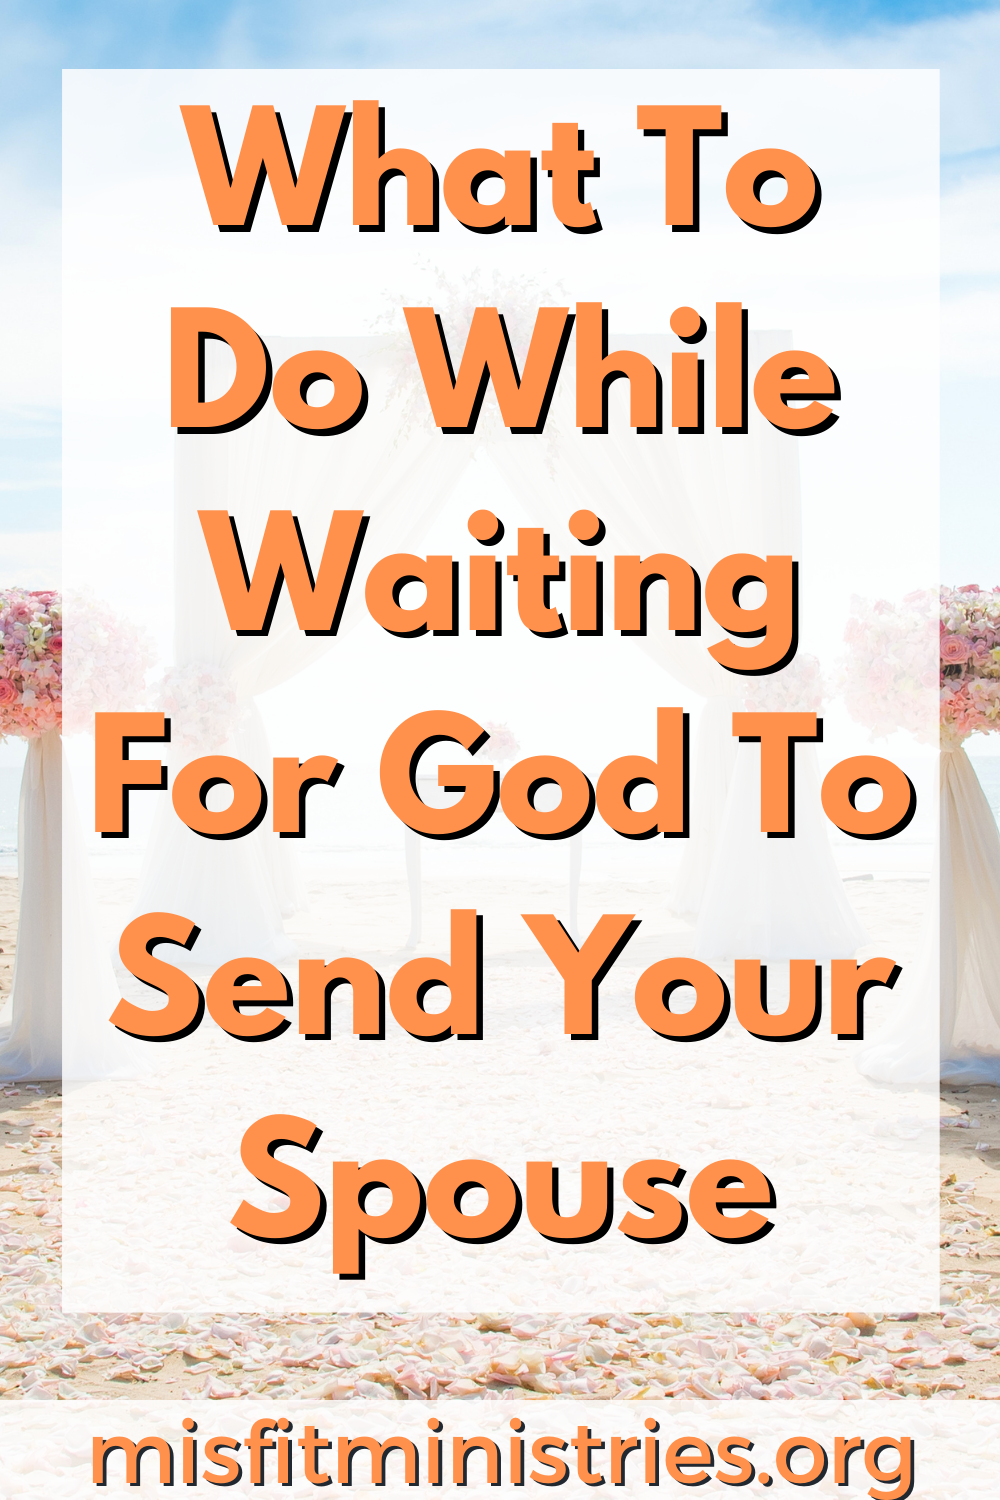 What Do You Do While Waiting For God To Send Your Spouse